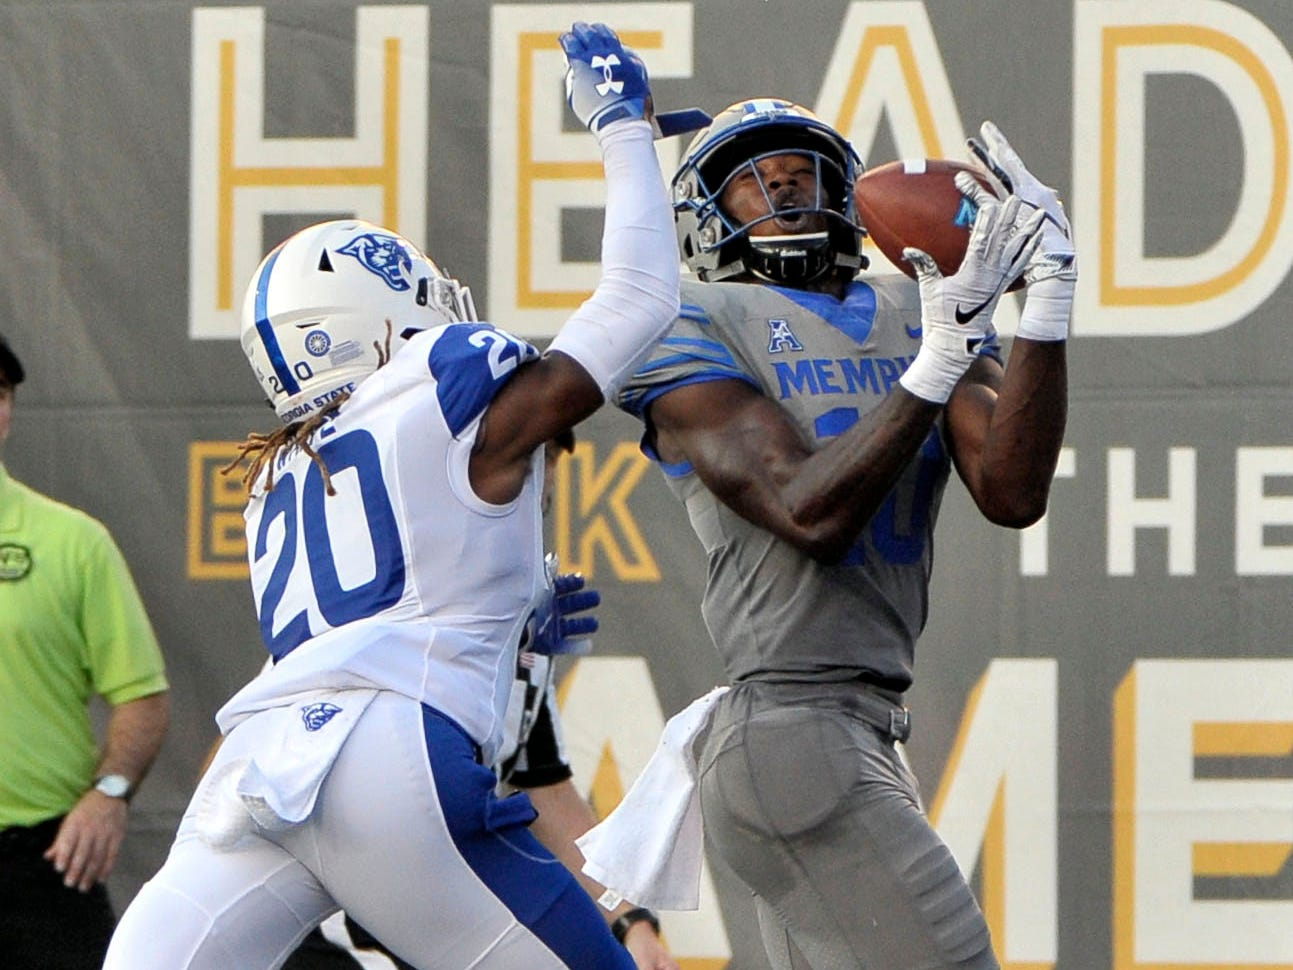 Memphis Tigers wide receiver Damonte Coxie (10) catches a touchdown pass against Georgia State Panthers cornerback Quavian White (20) during the first half at Liberty Bowl Memorial Stadium.